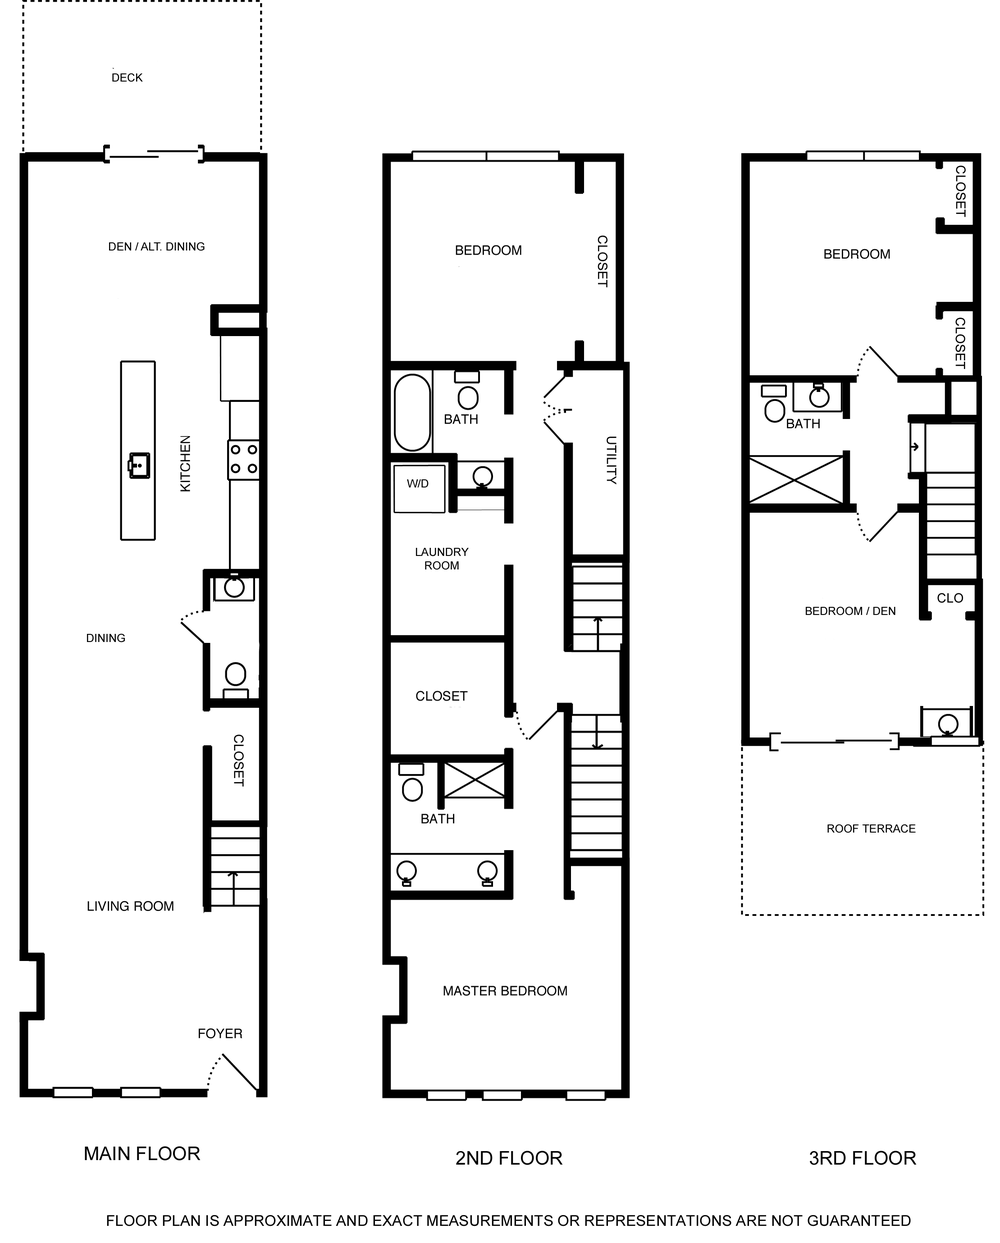 Floorplan 919 4th Combined no measure.png